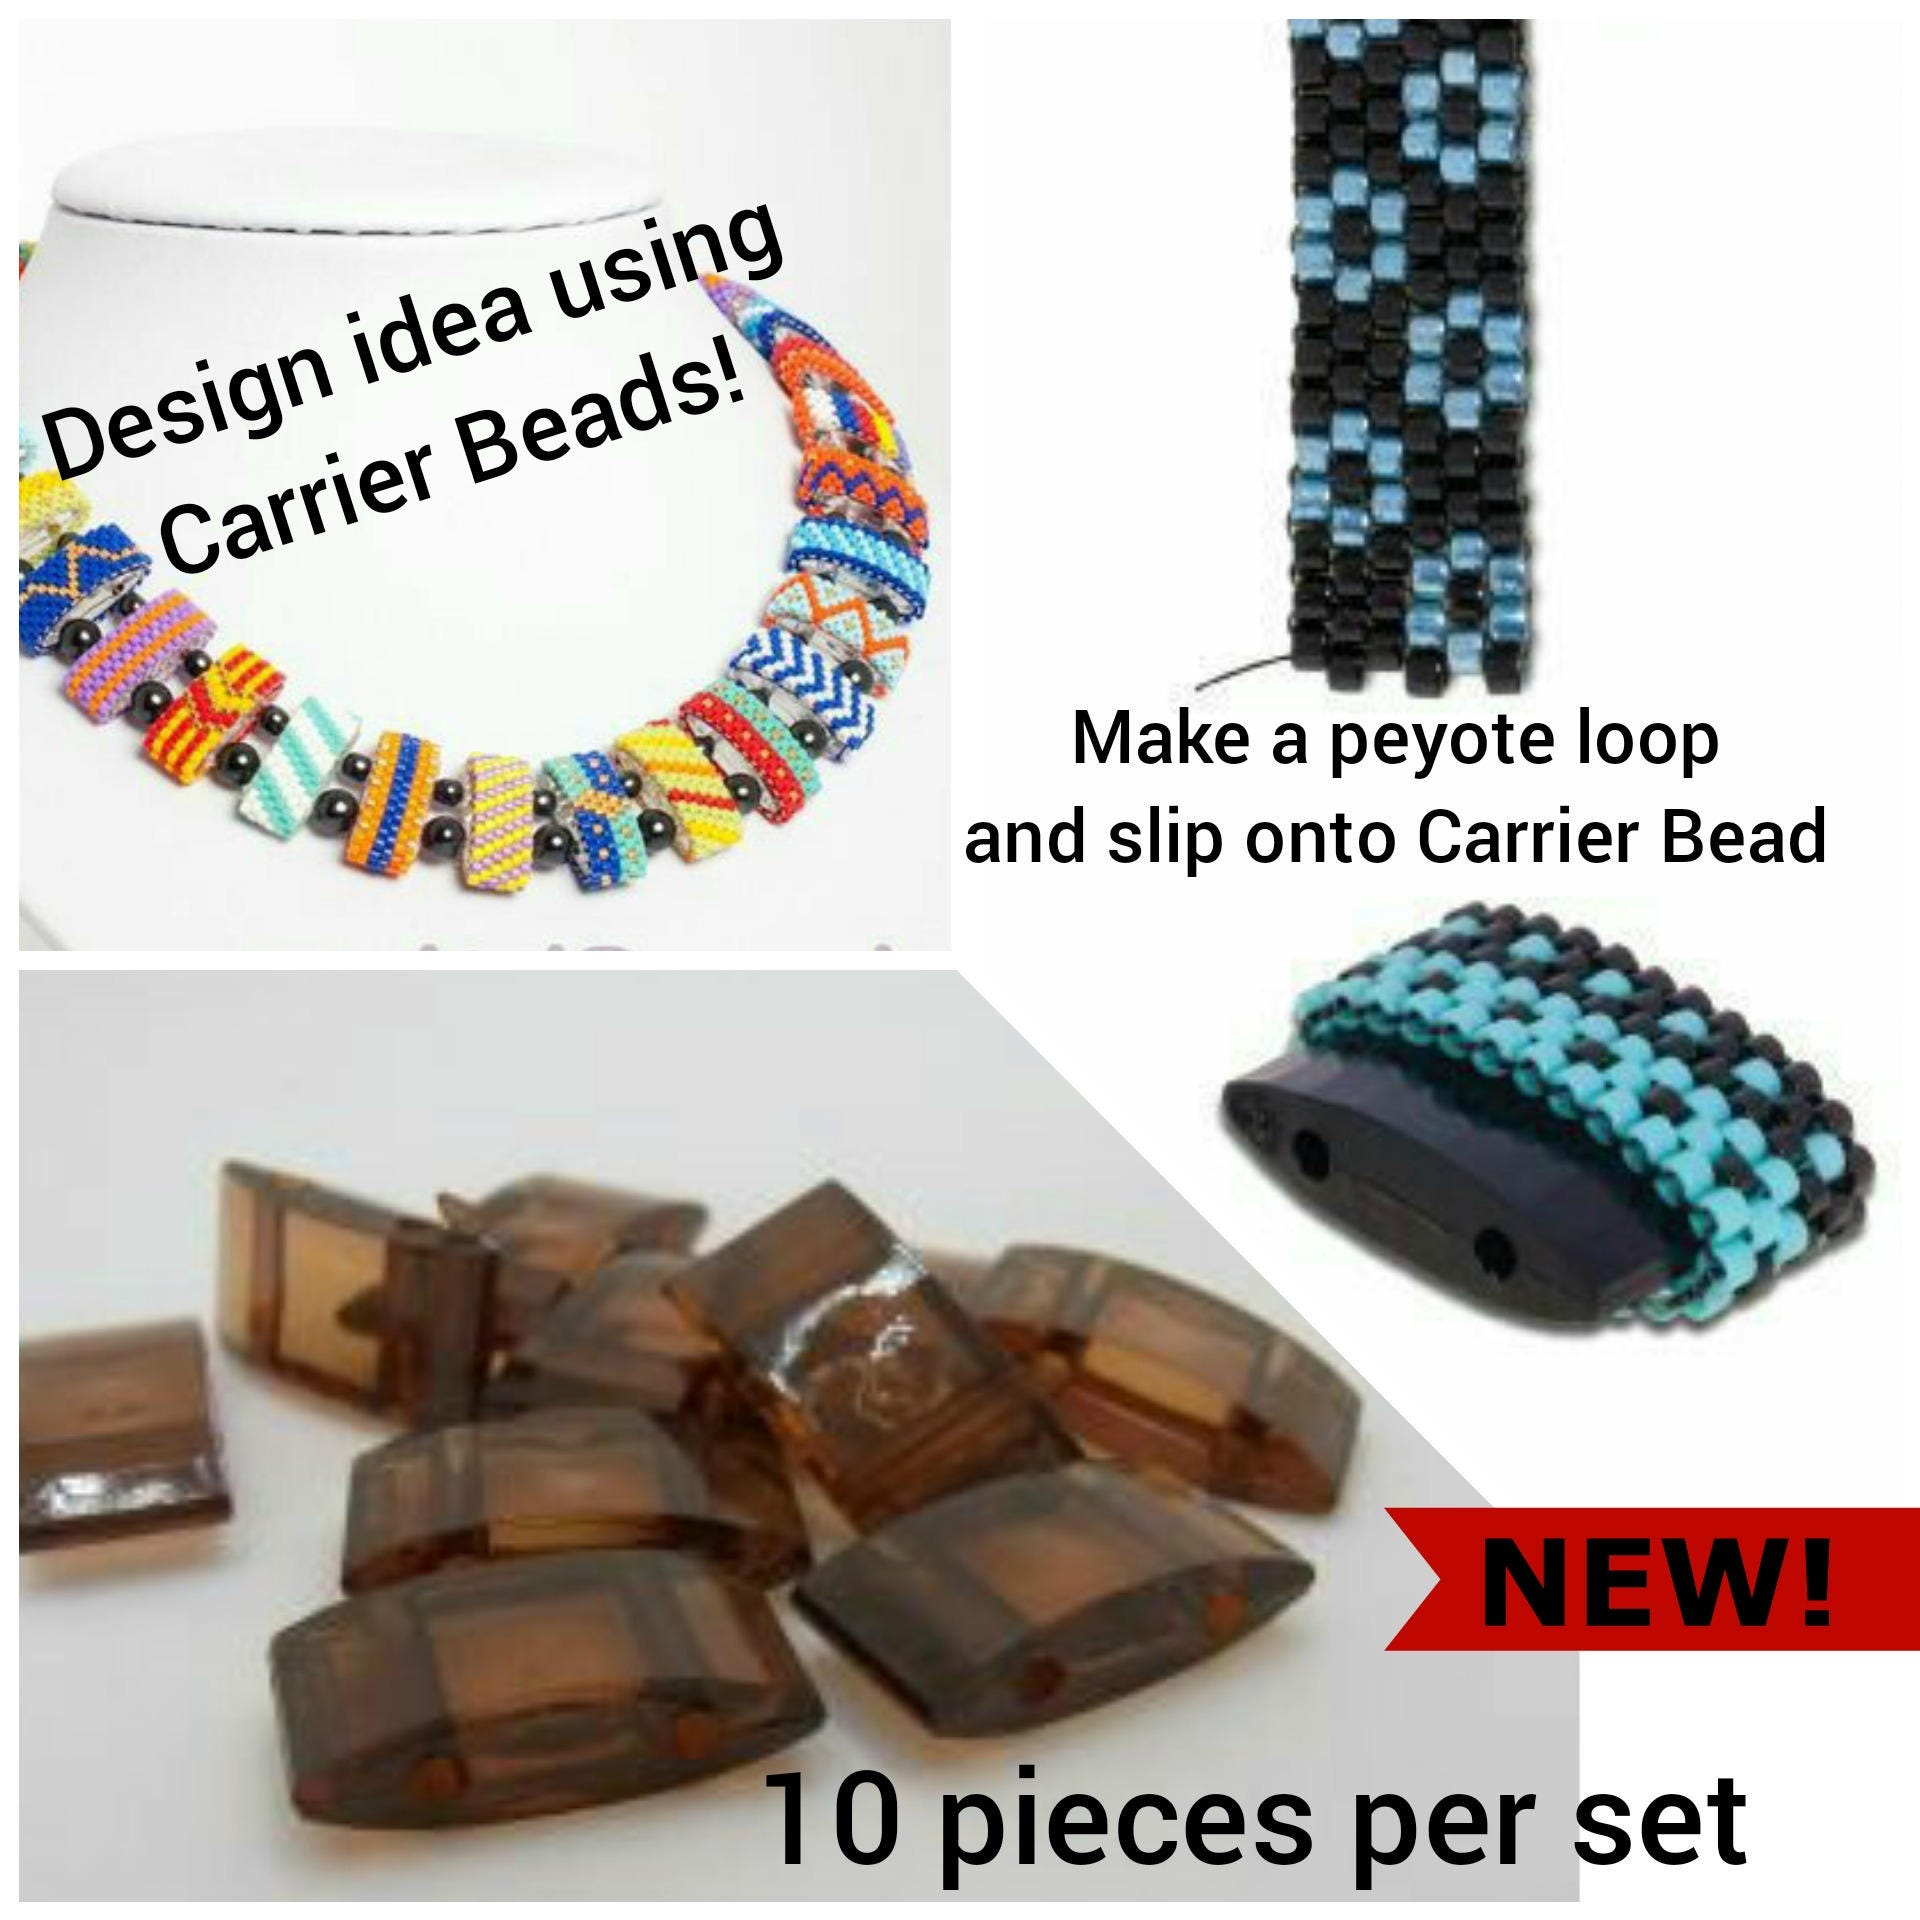 CARRIER BEADS that are clear The fast and easy way to make